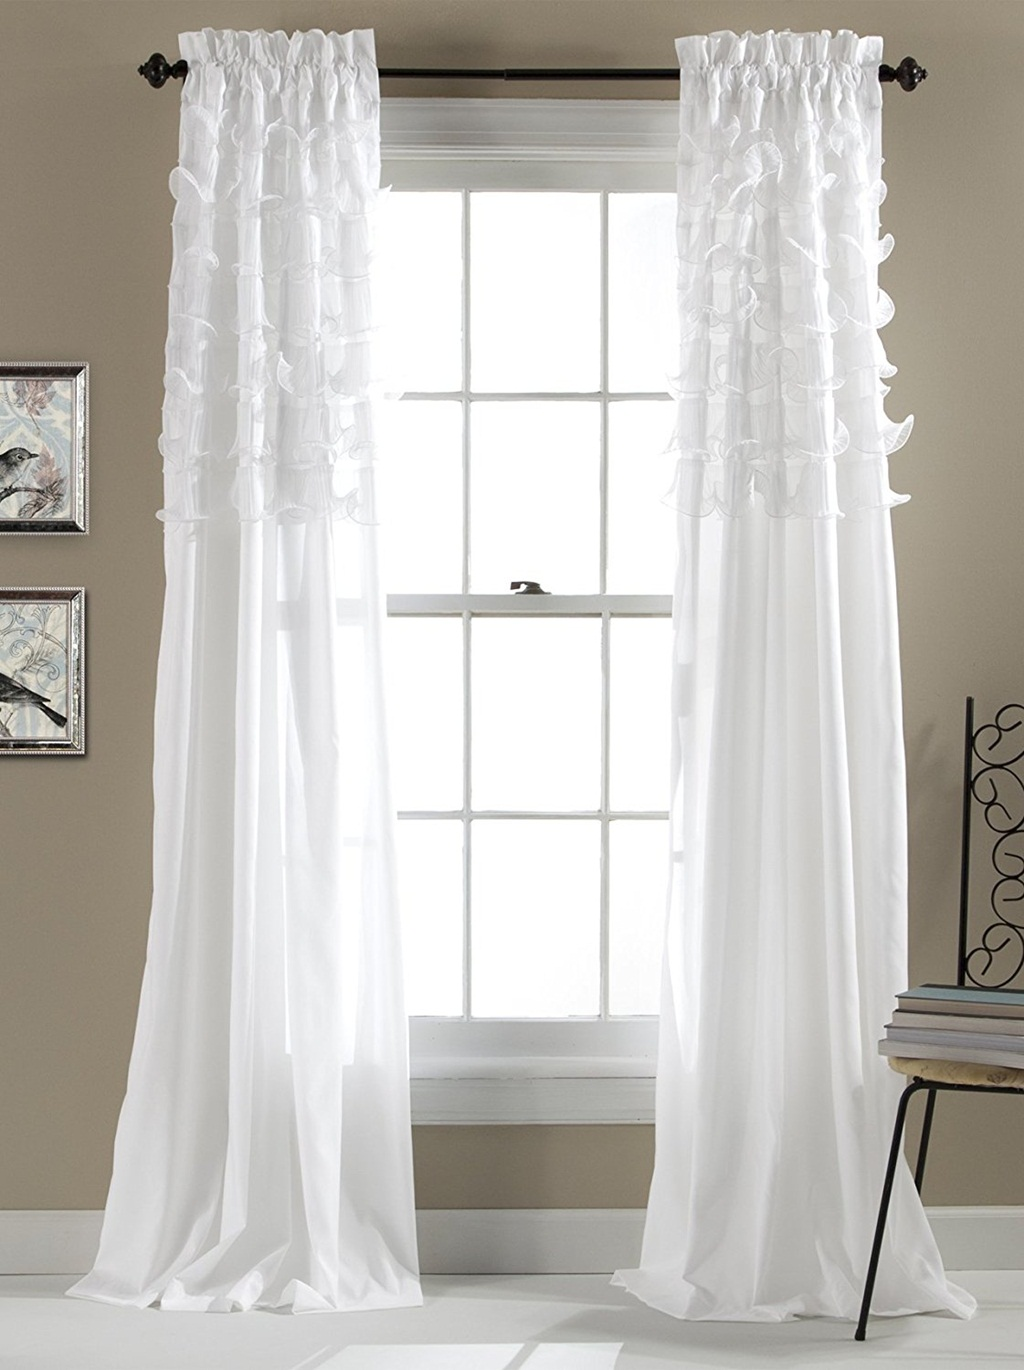 Adorable Home Curtains Budget